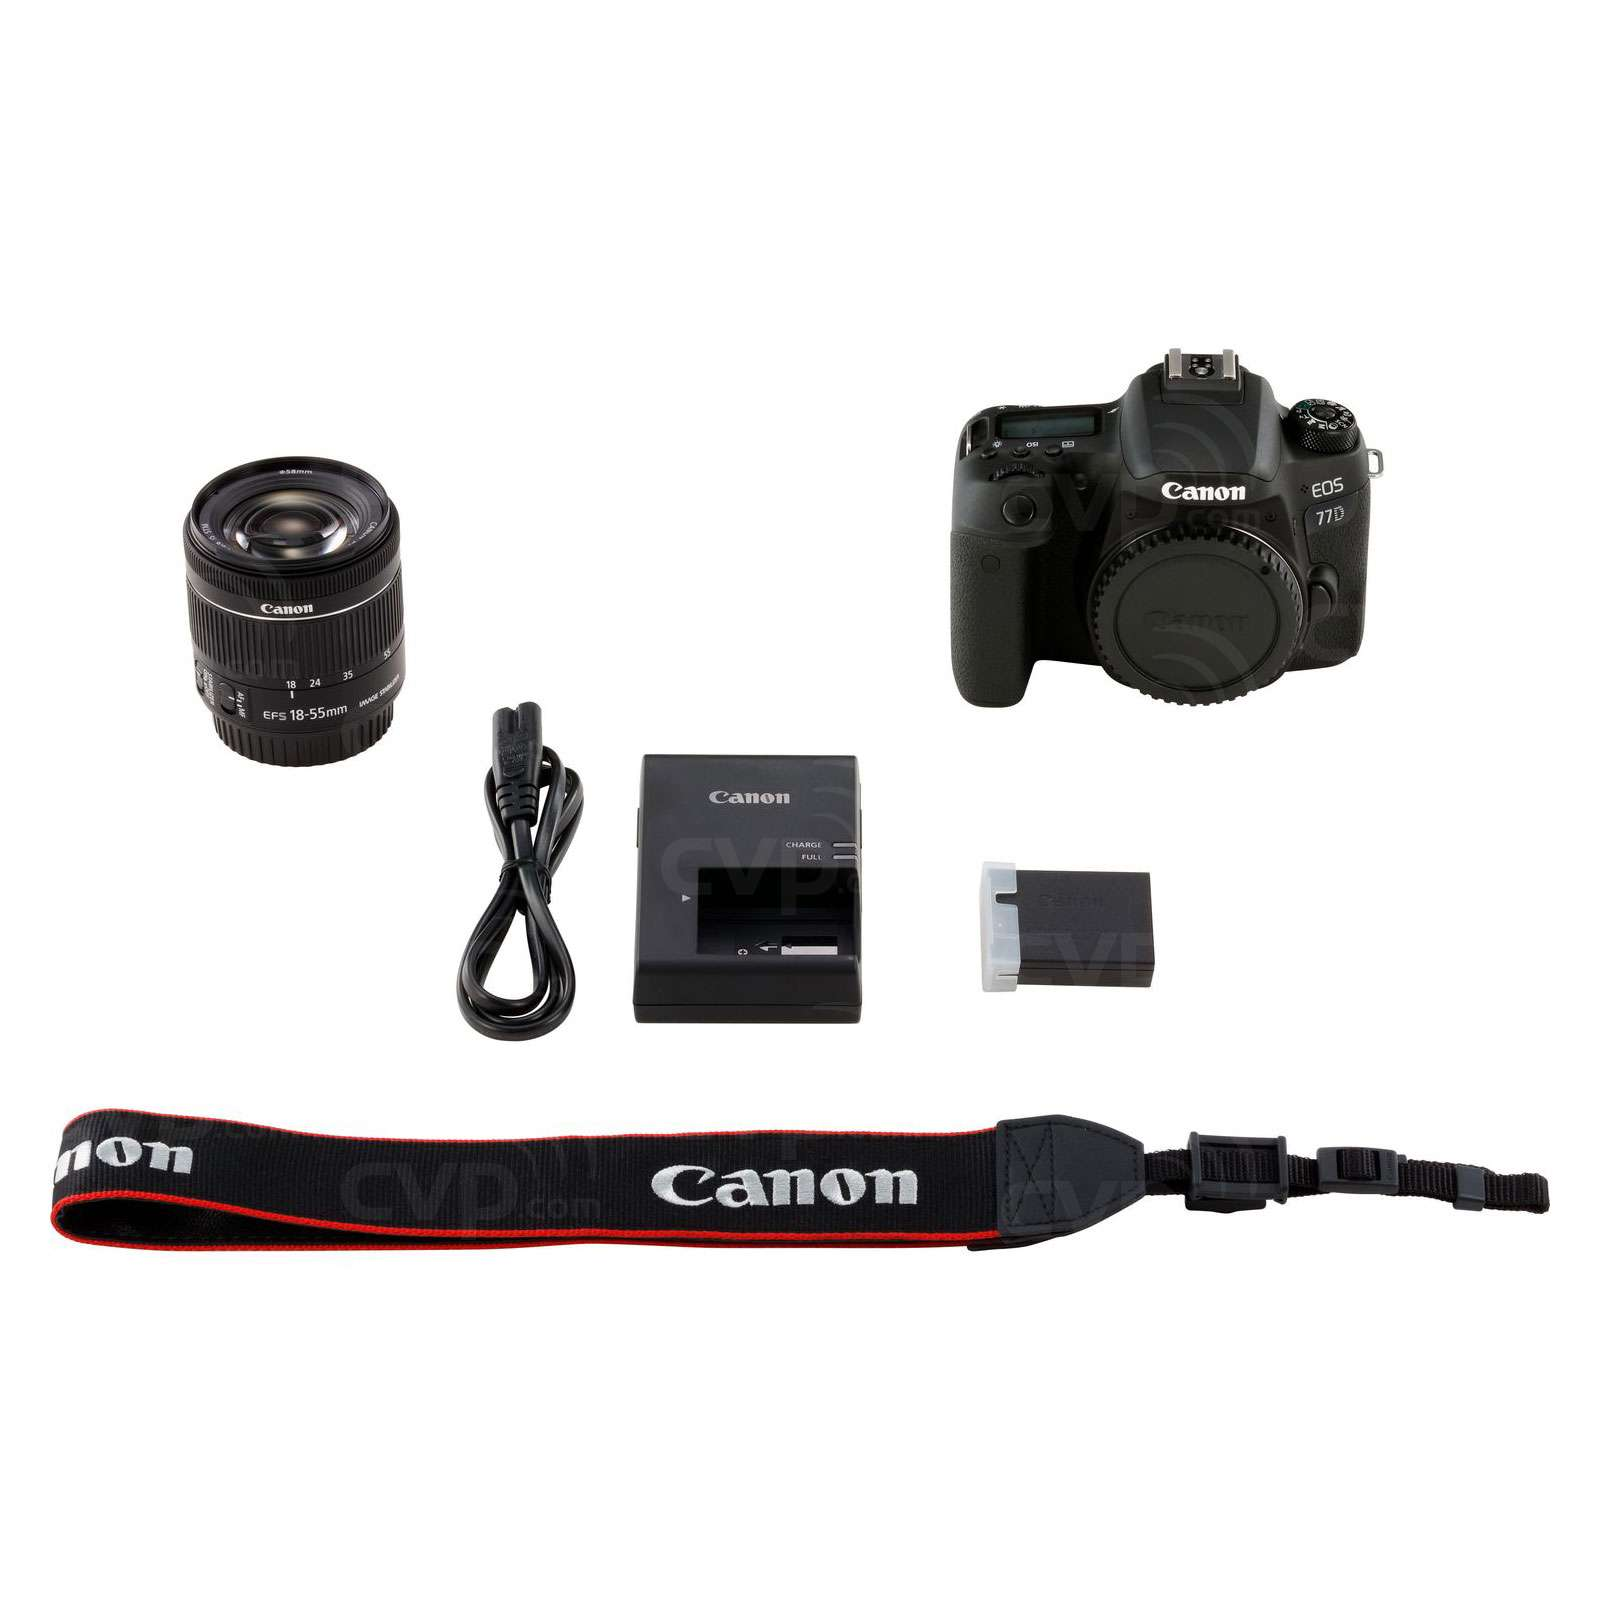 Canon EOS 77D + EF-S 18-55mm f/4-5.6 IS STM Lens